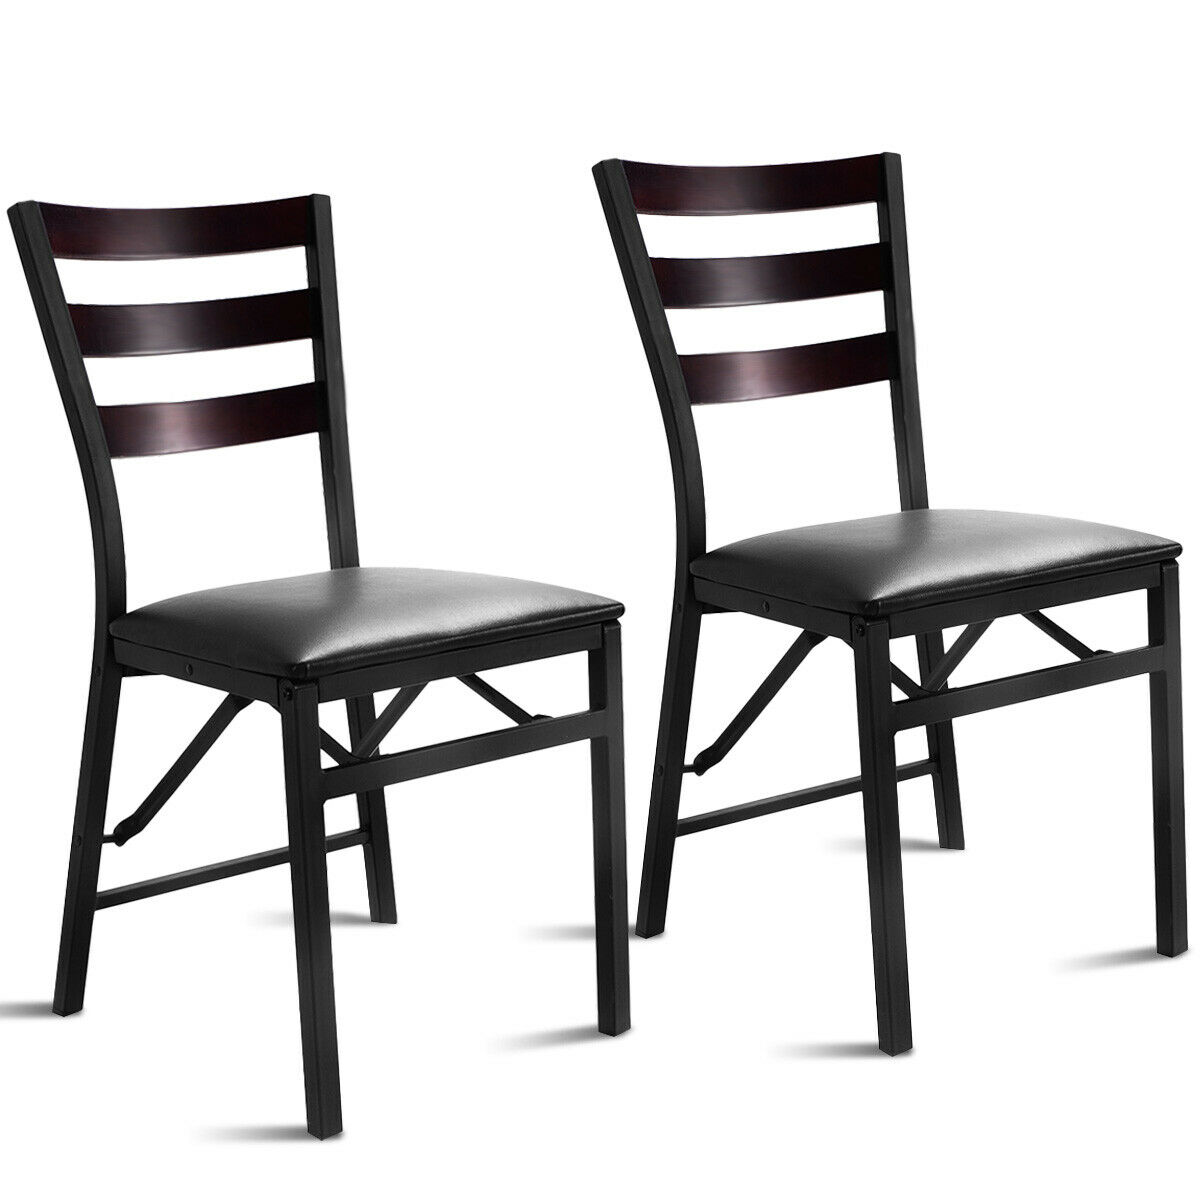 Gymax 2PC Folding Chair Home Restaurant Furniture - image 8 of 8